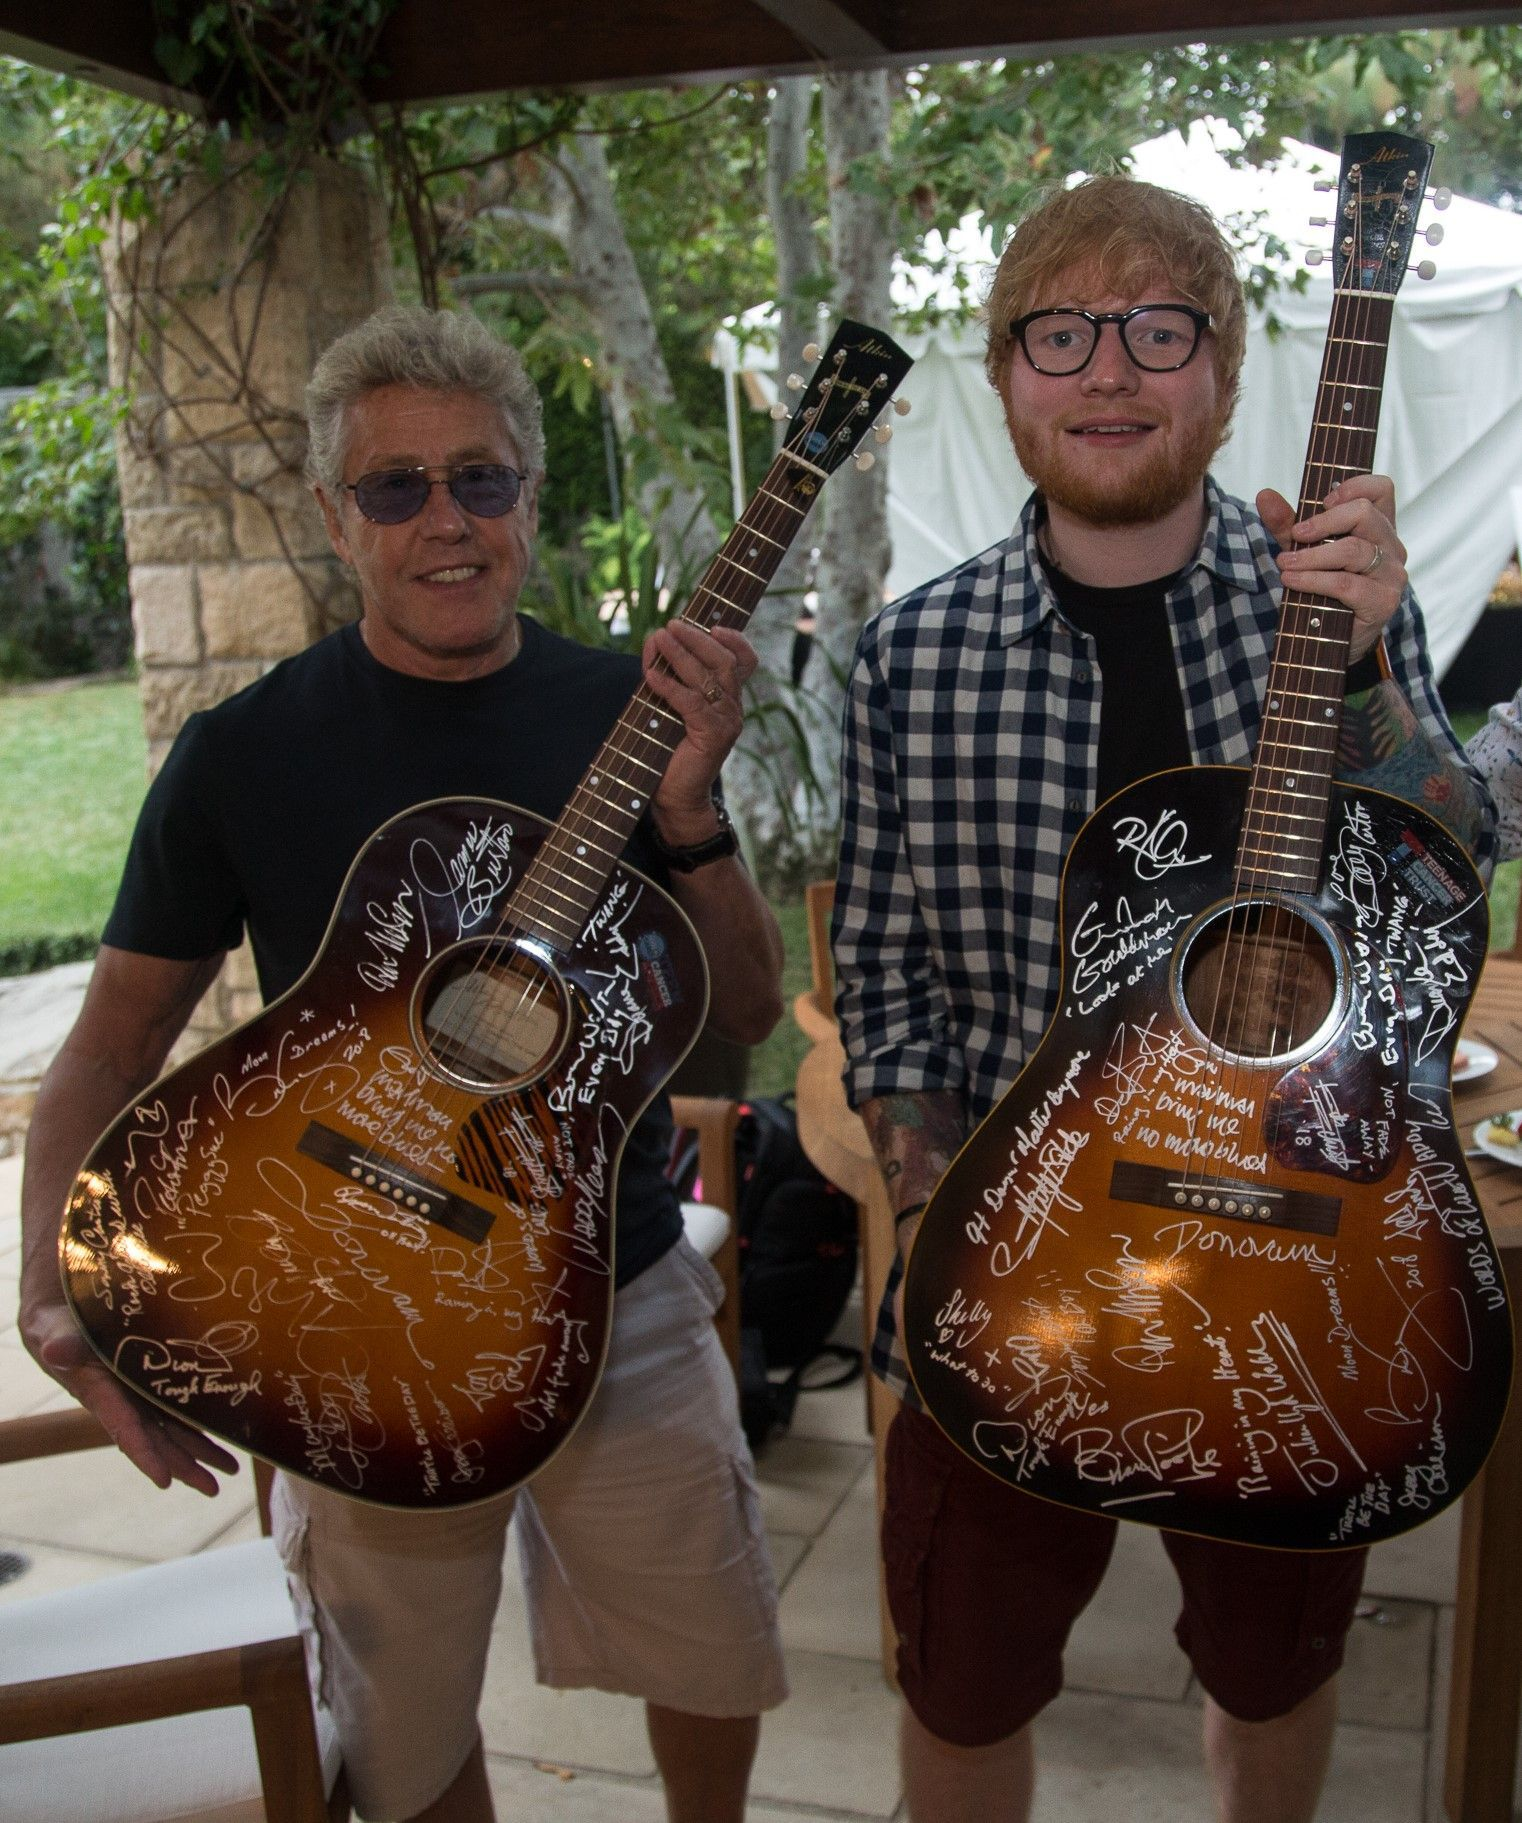 Roger Daltrey and Ed Sheeran holding signed Buddy Holly guitars